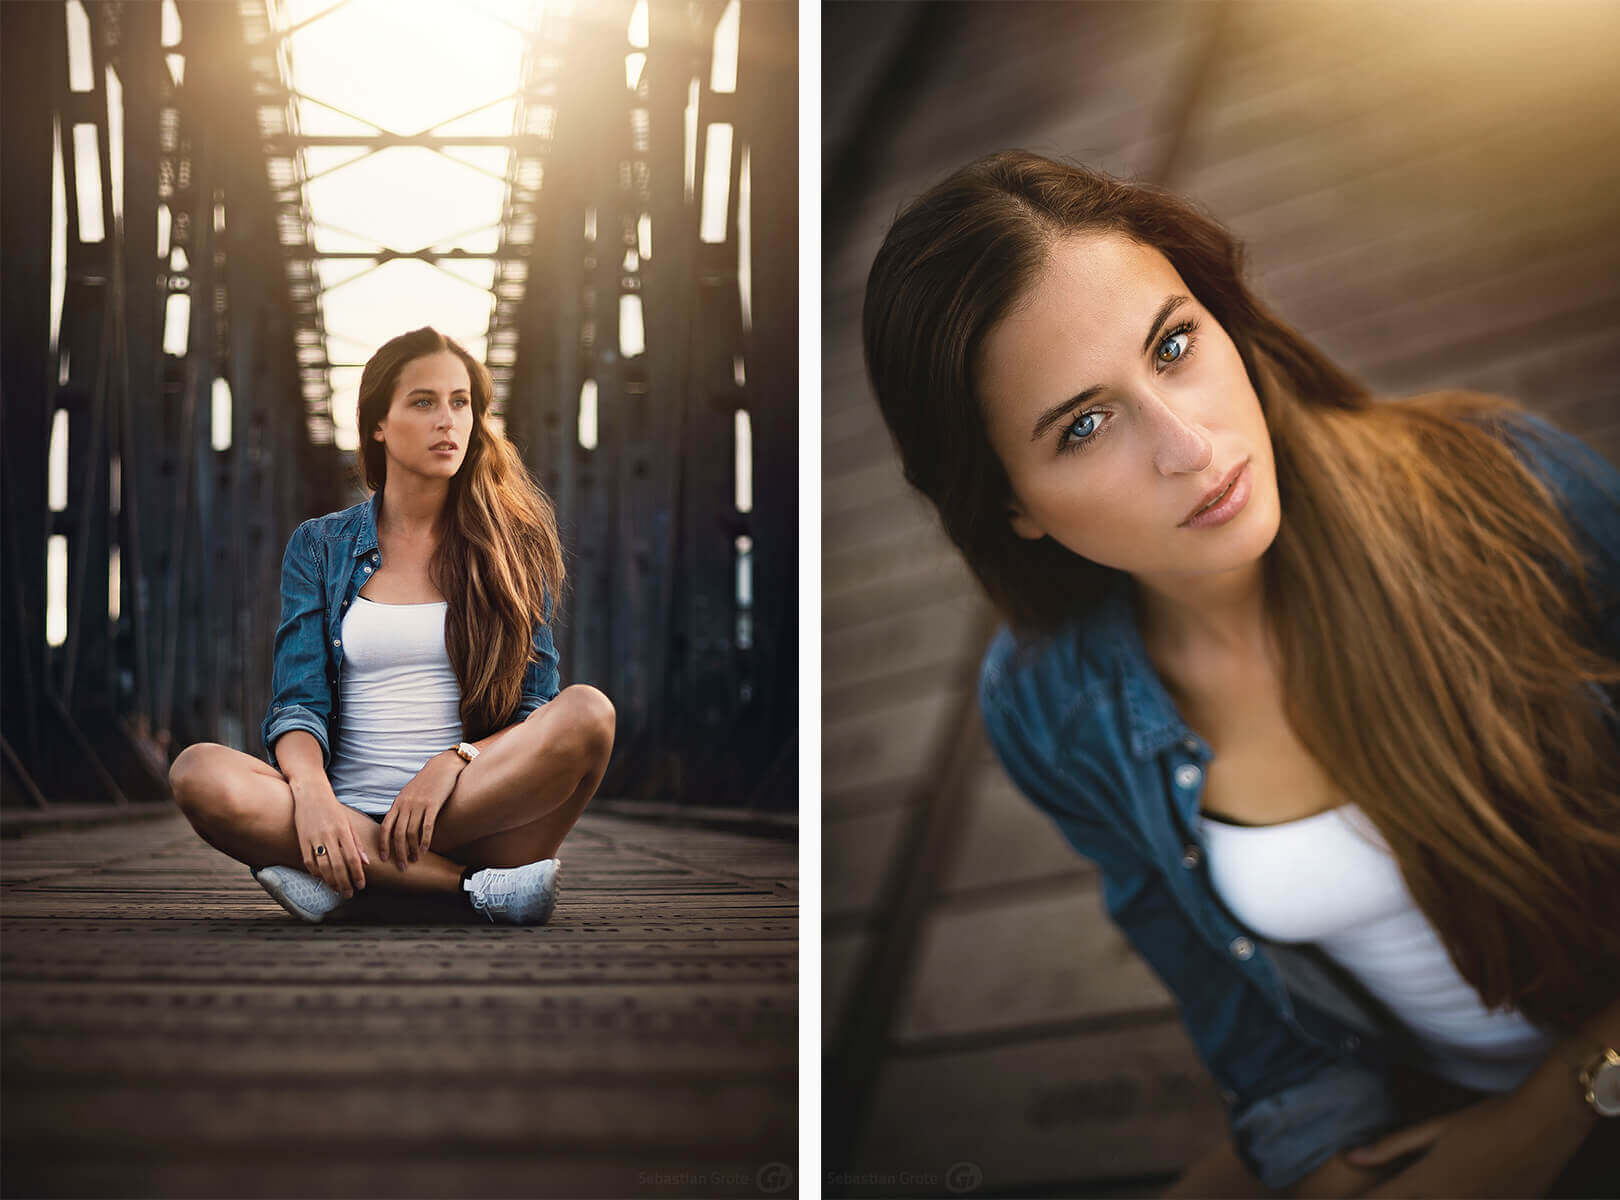 Anna-Lisa 13 und 14 - Shooting in Magdeburg